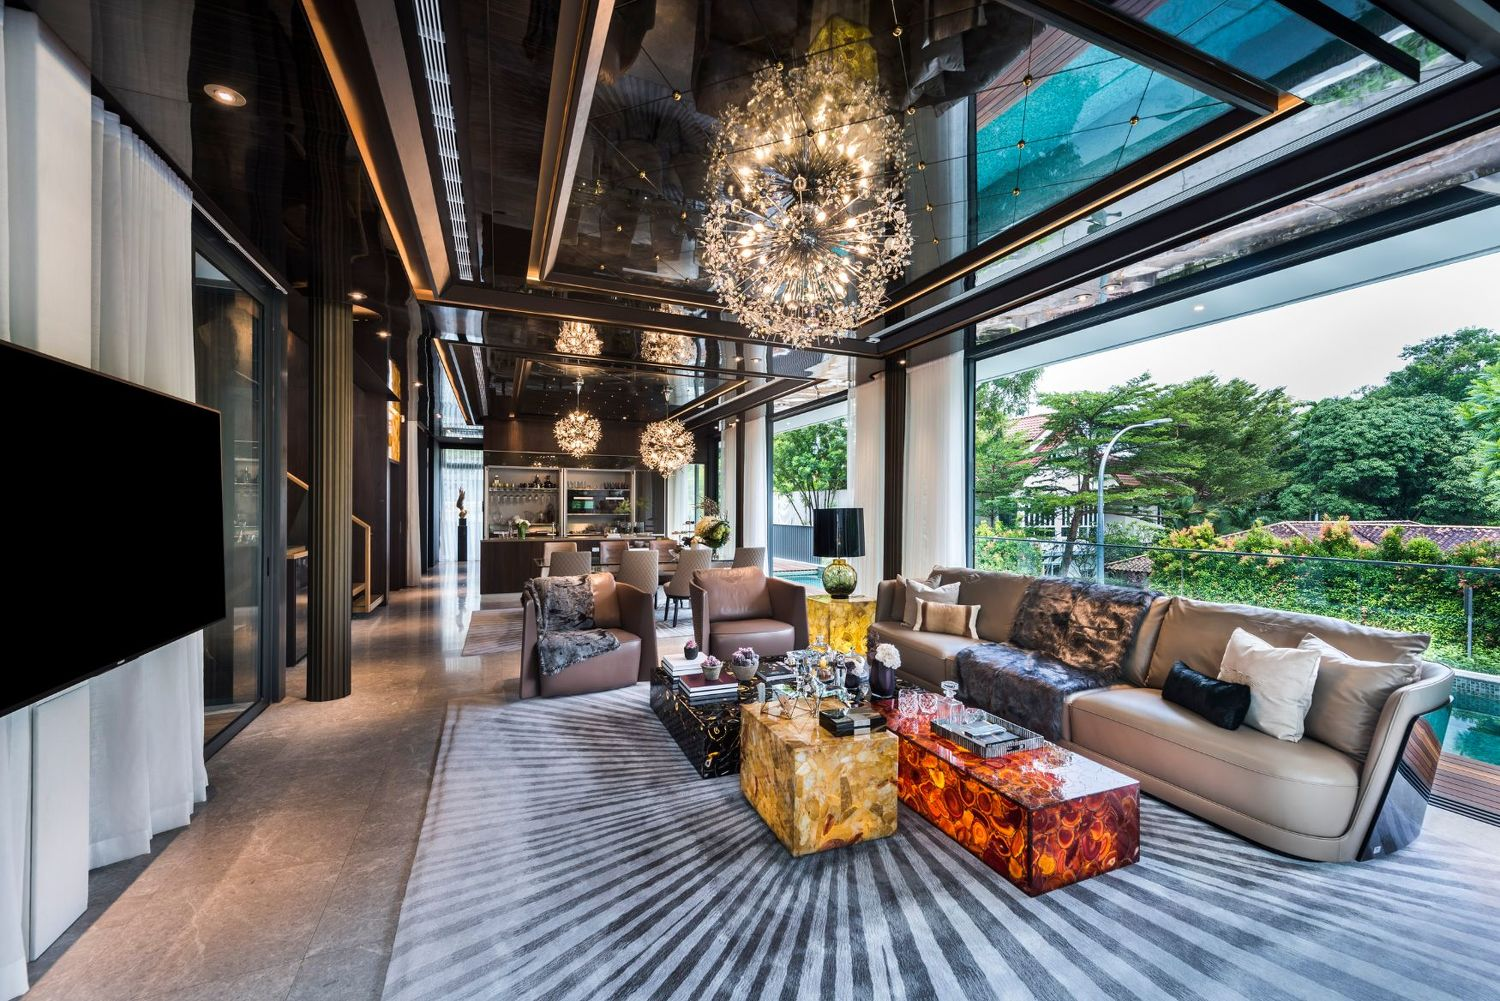 The living room of a pool villa - EDGEPROP SINGAPORE